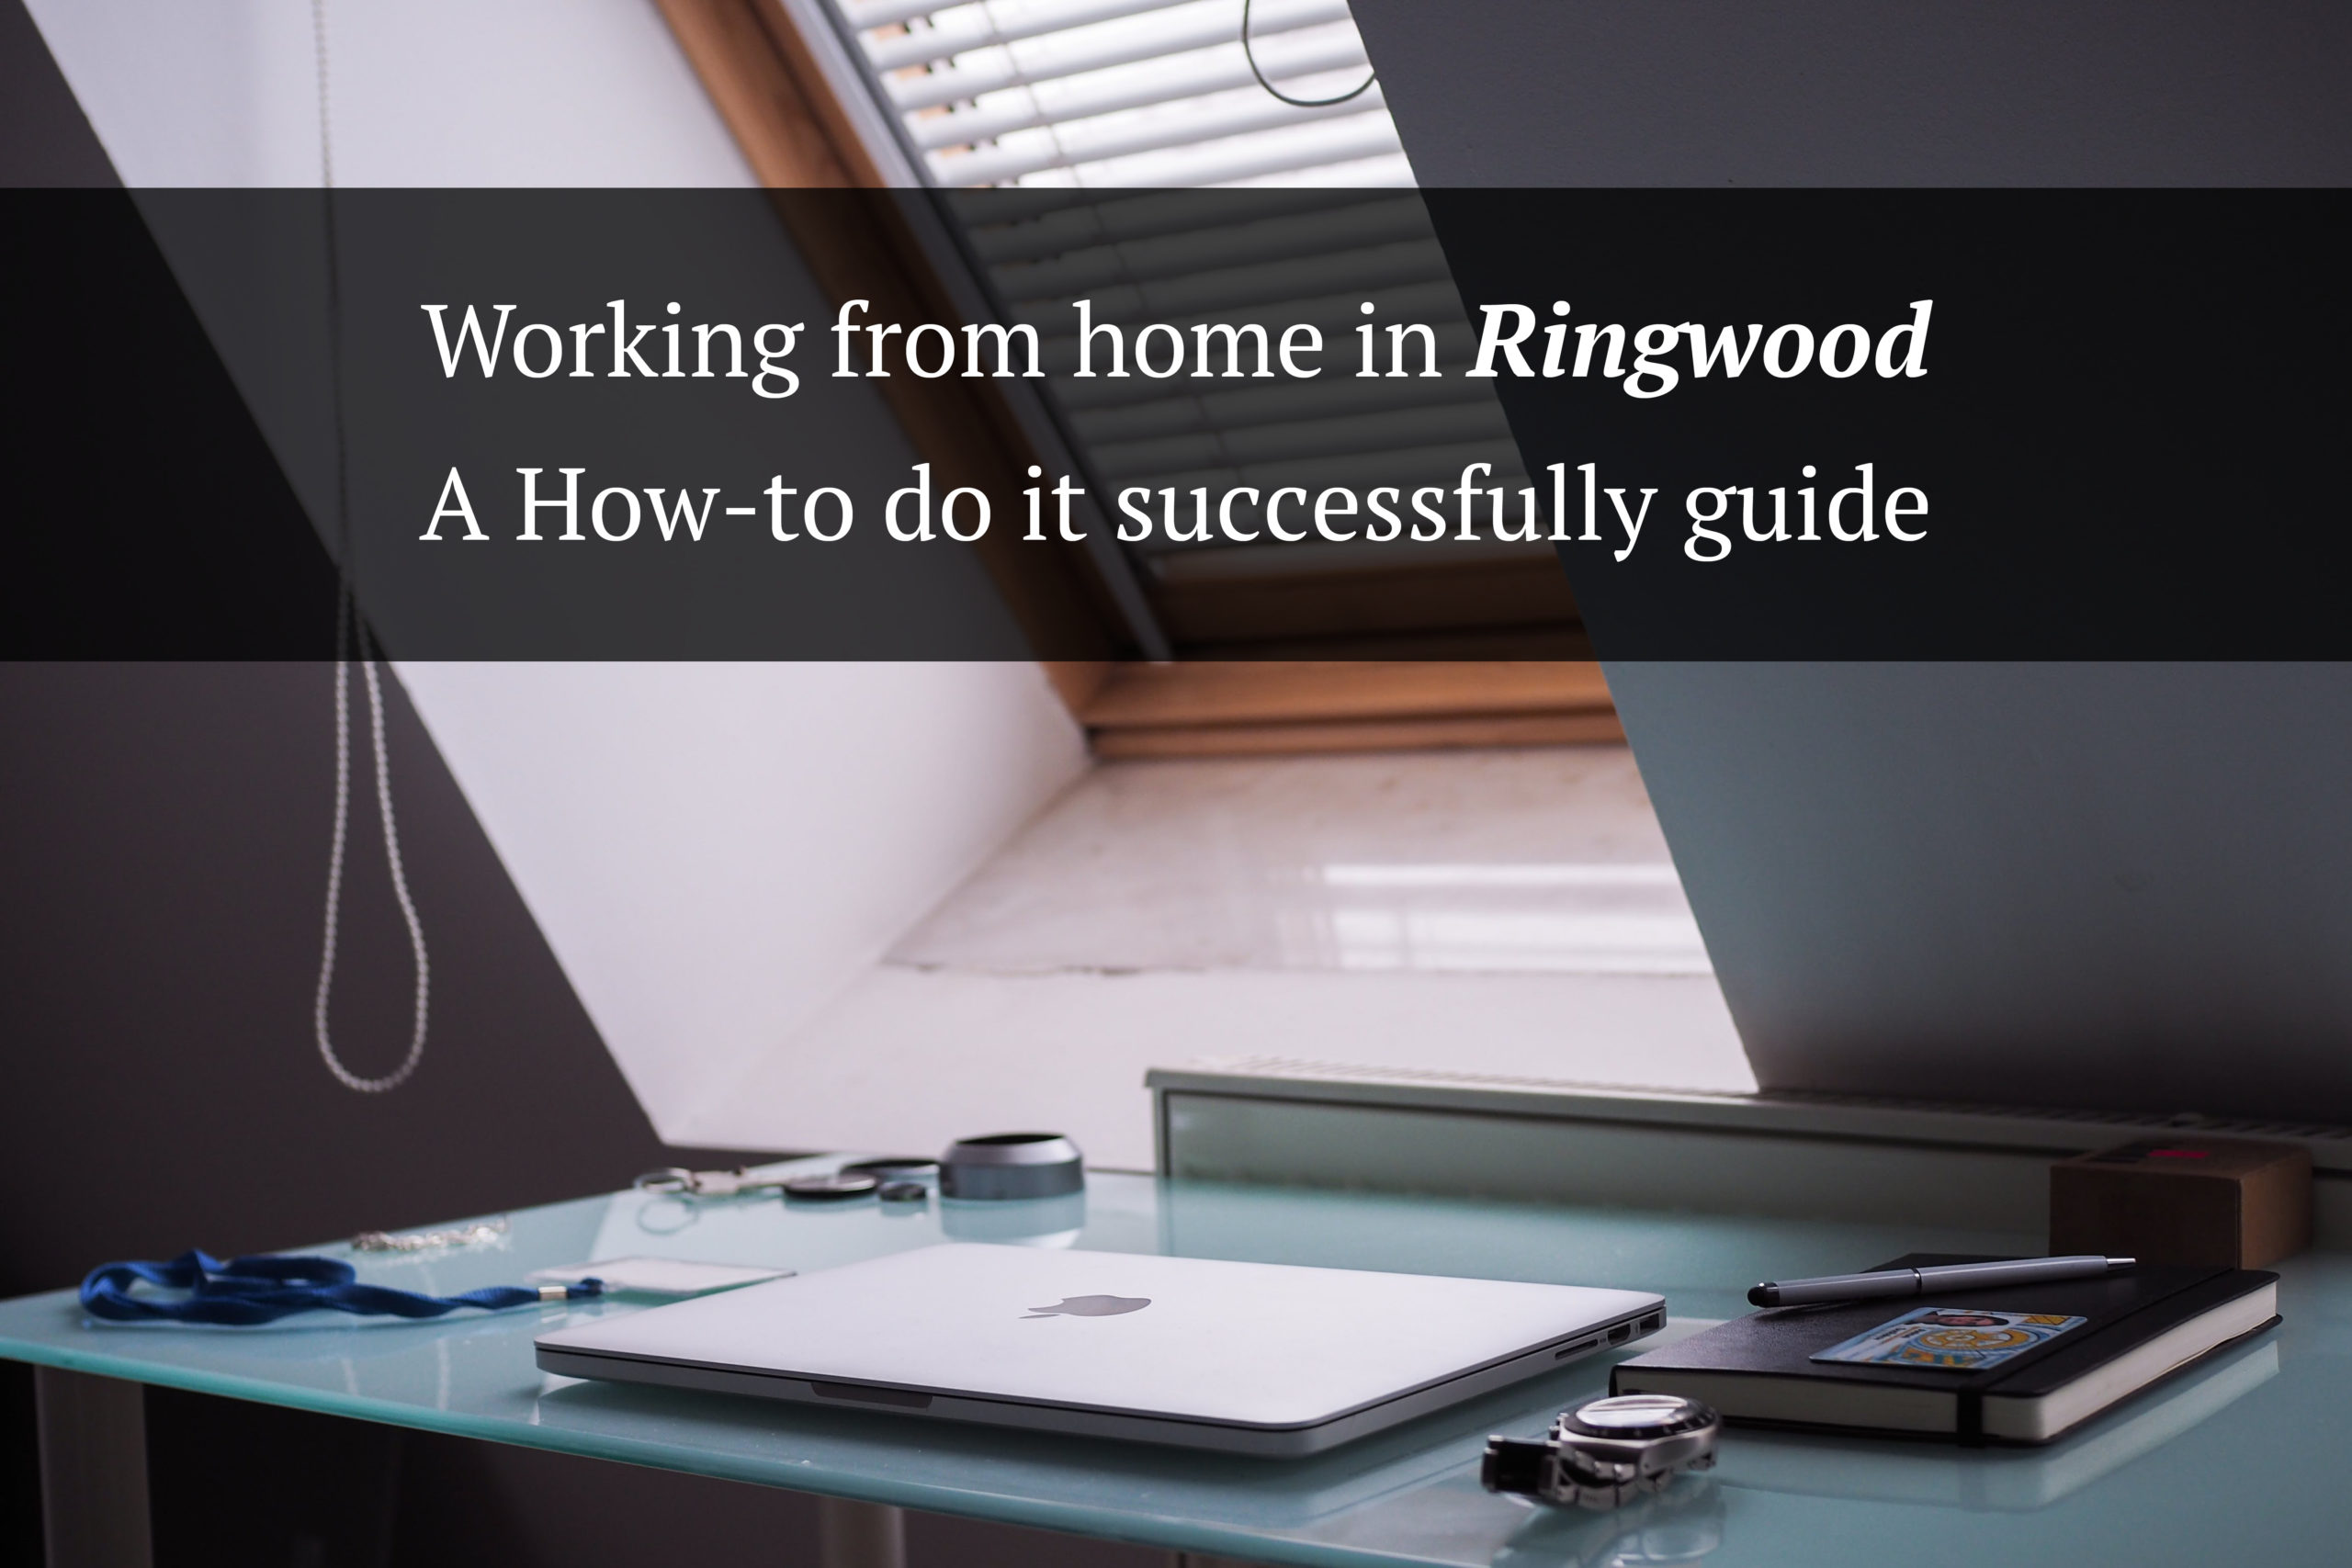 Working from home in Ringwood – A How-to do it successfully guide